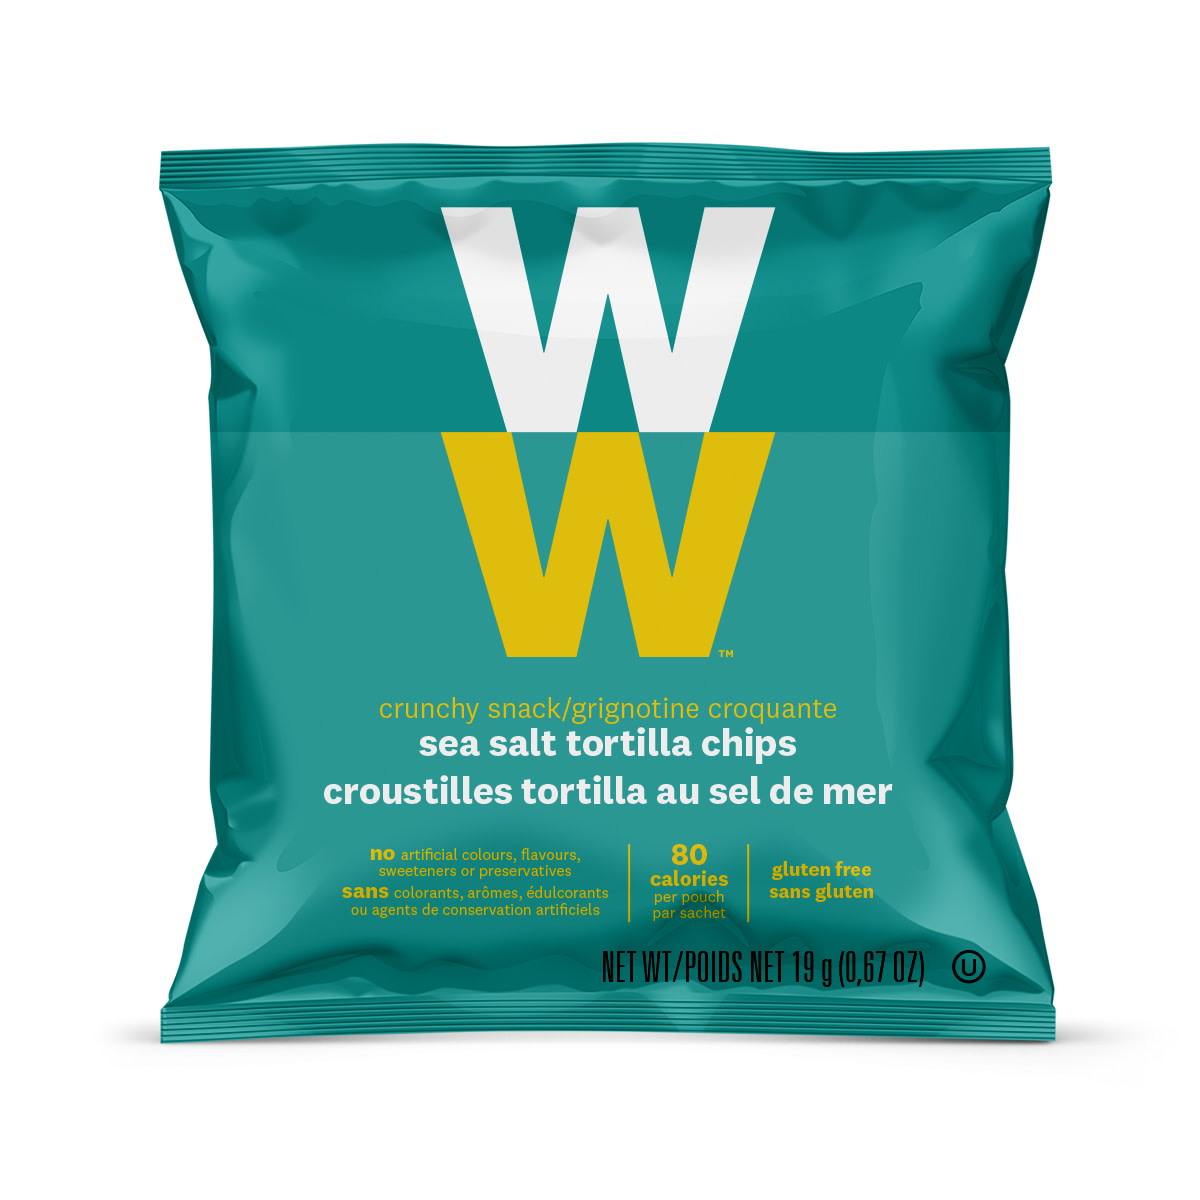 Sea Salt Tortilla Chips - front of the pouch